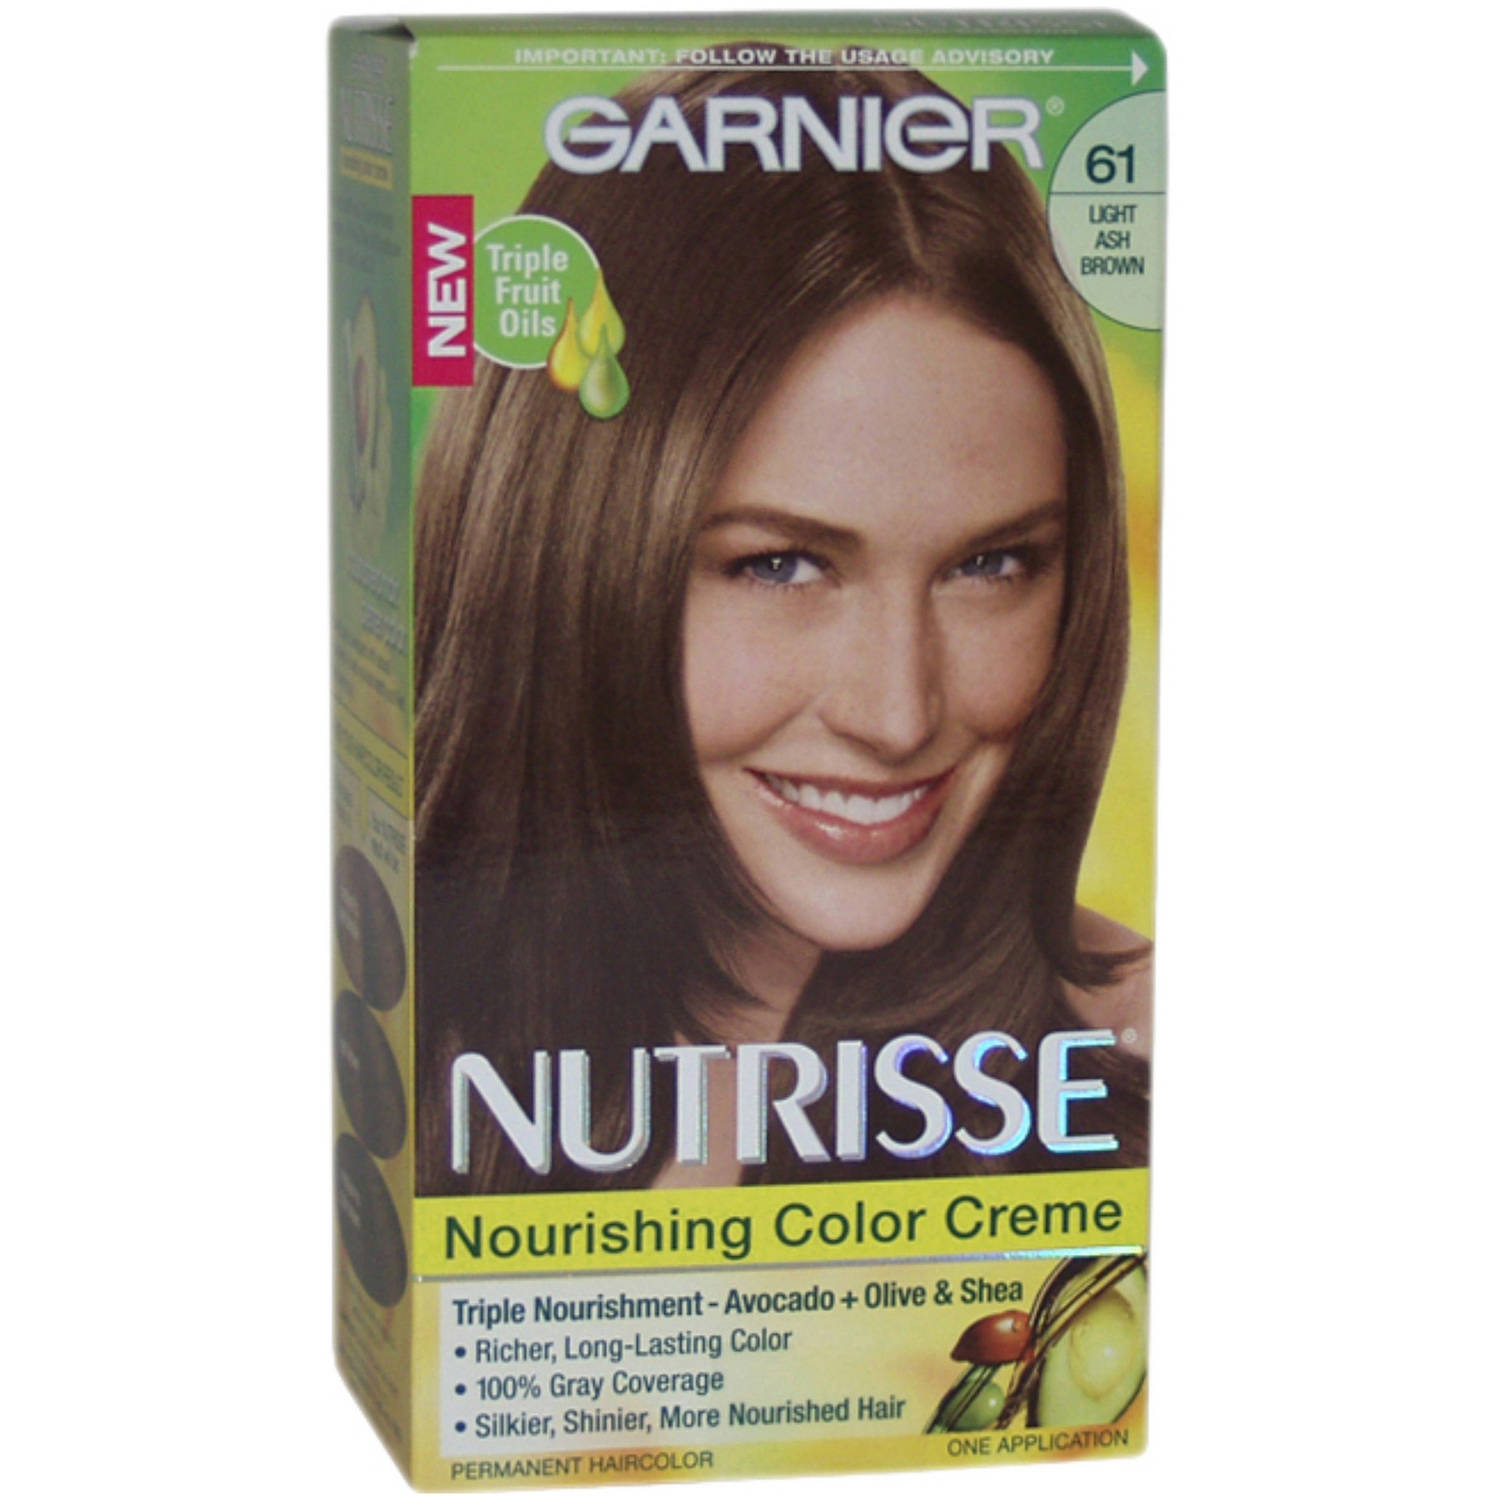 Garnier Nutrisse Nourishing Color Creme Hair Color 61 Light Ash